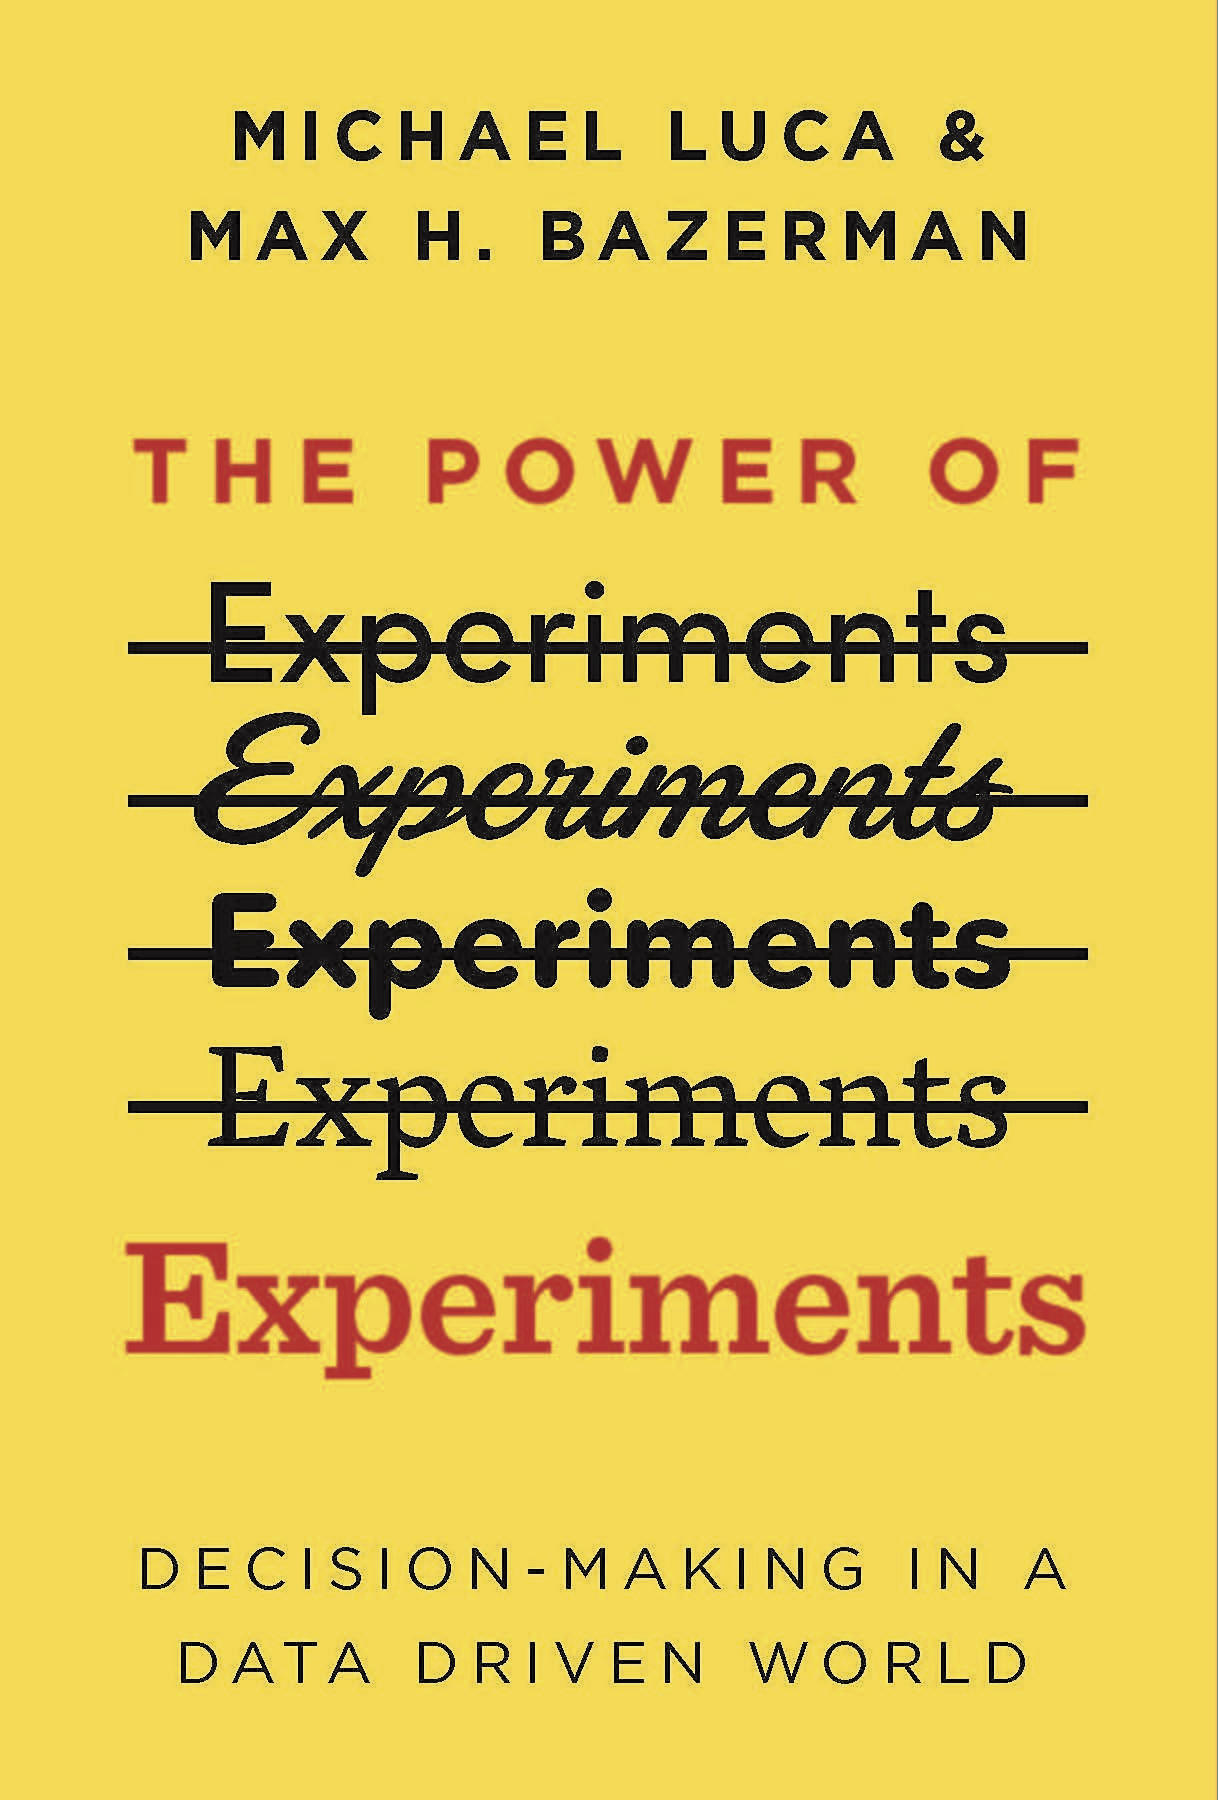 The Power of Experiments book cover